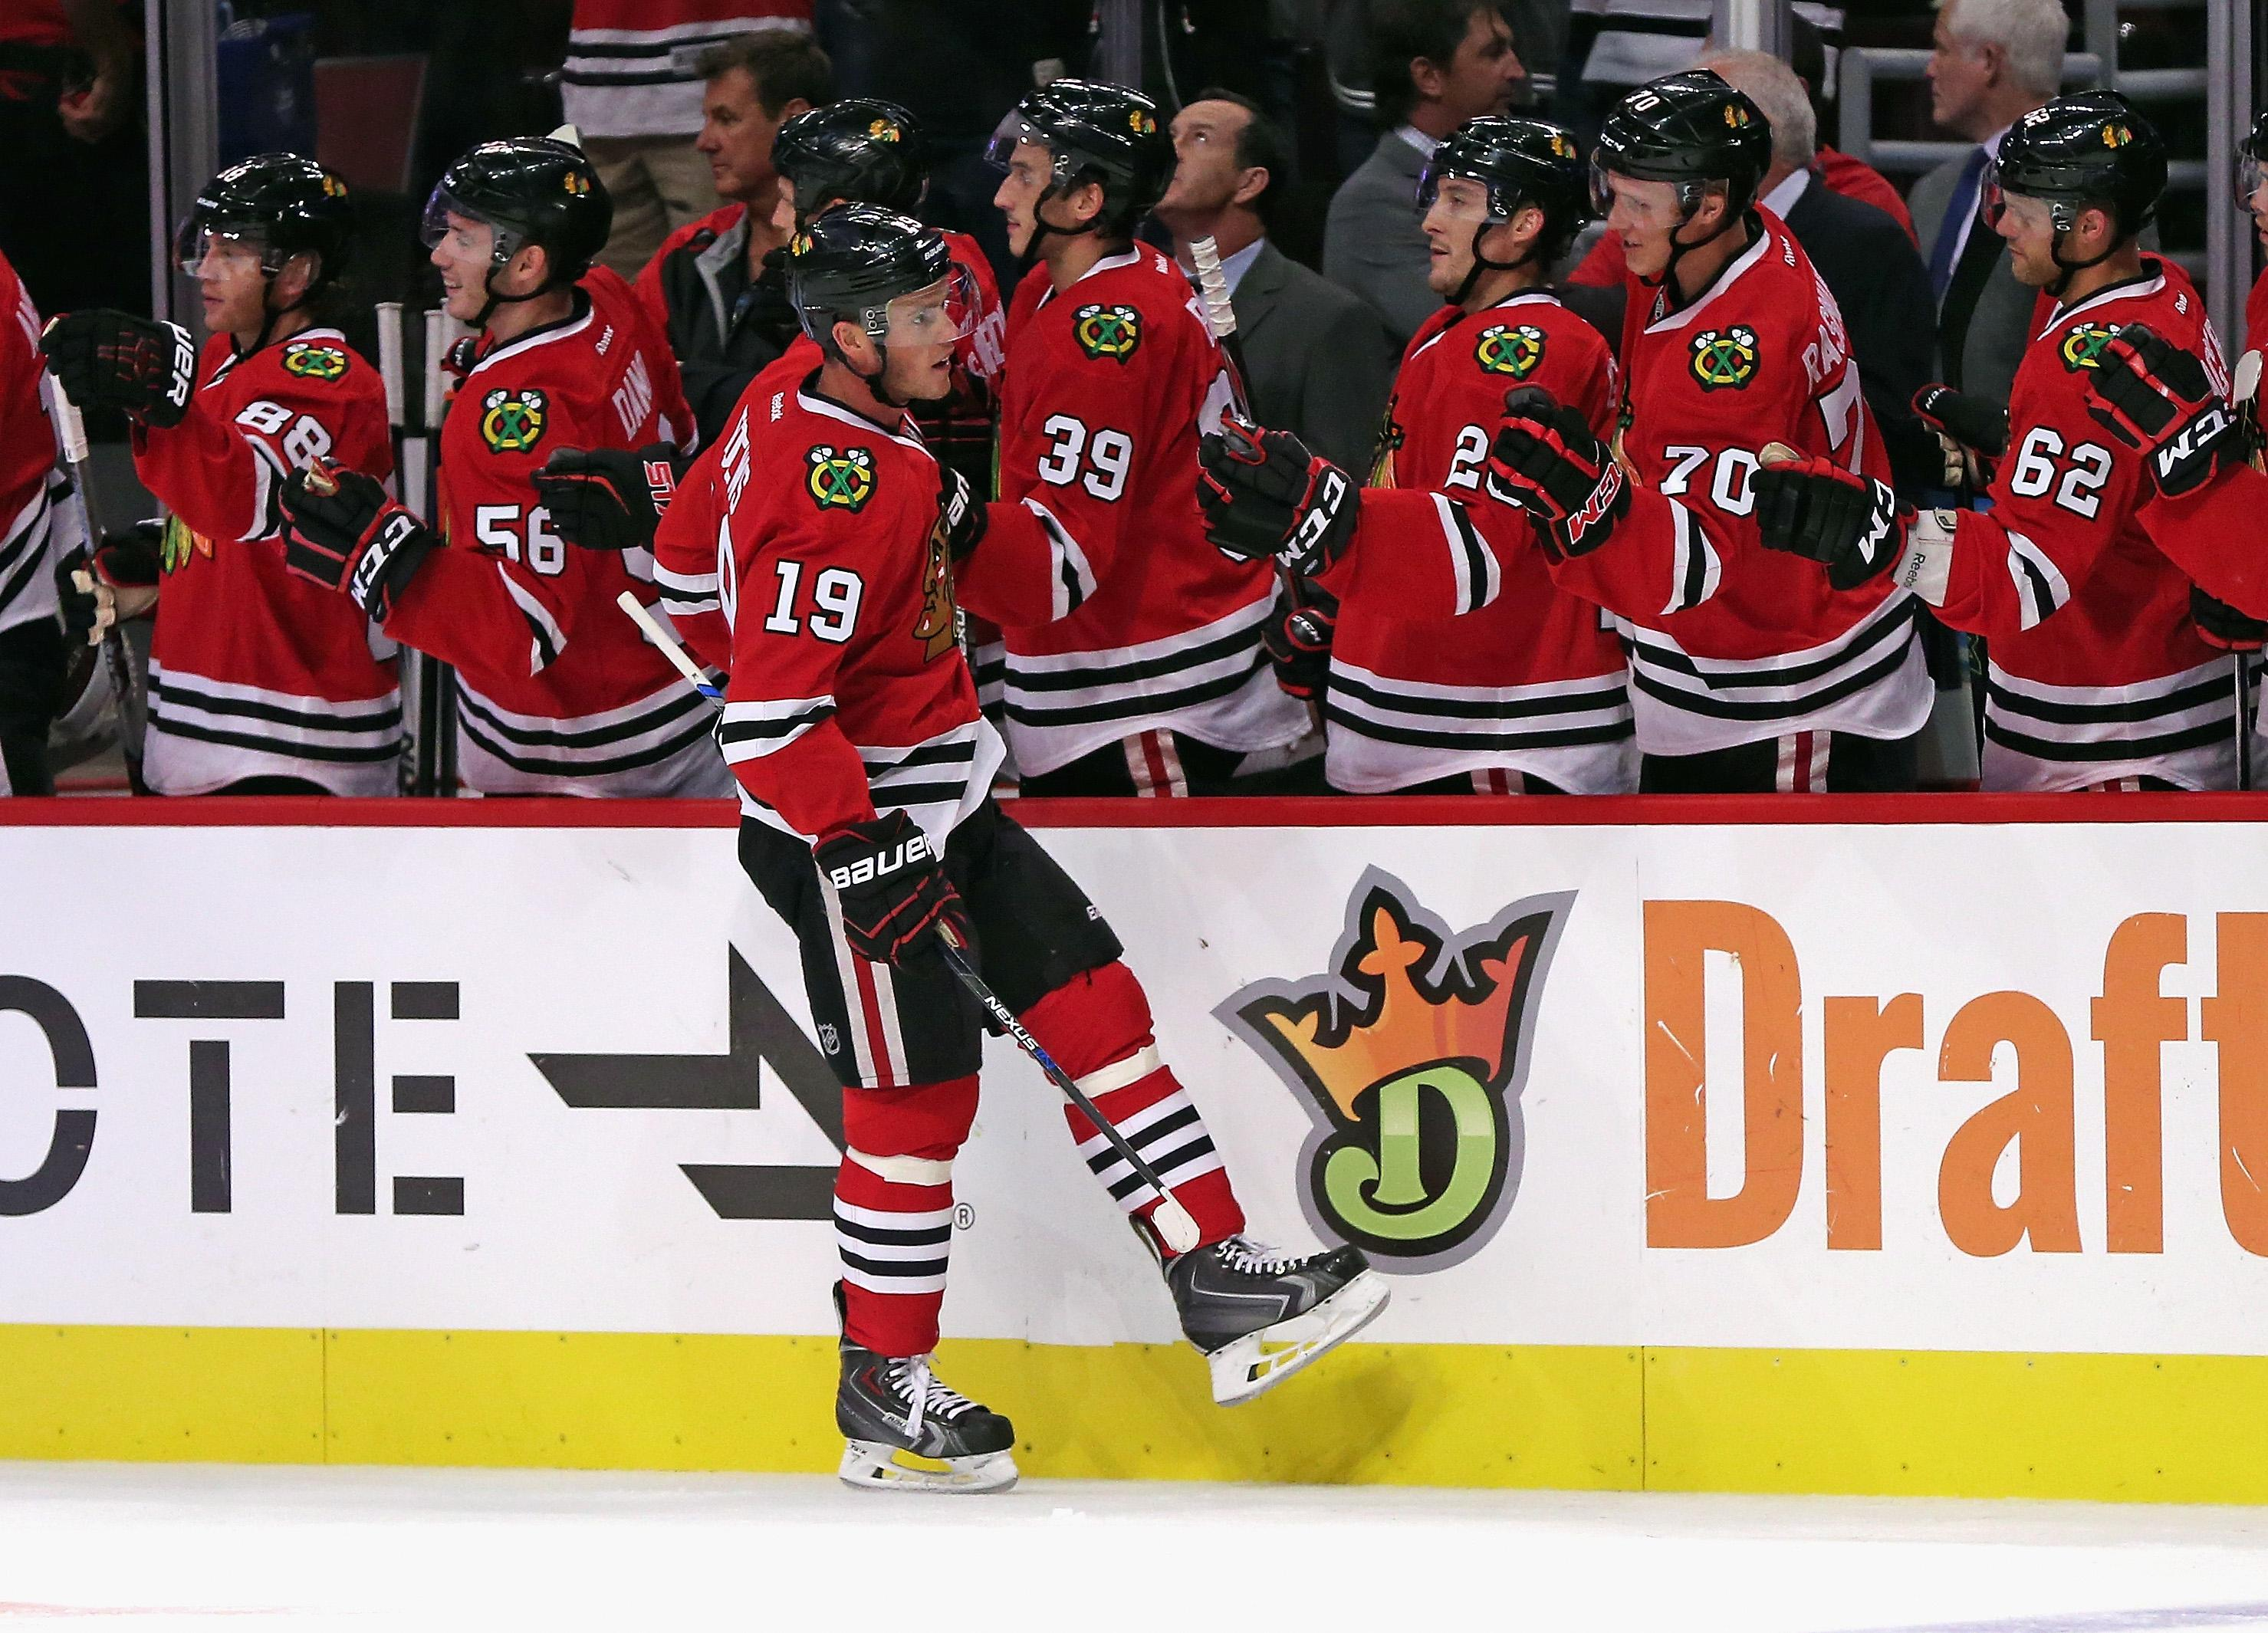 Bruins beat Blackhawks for 5th straight win